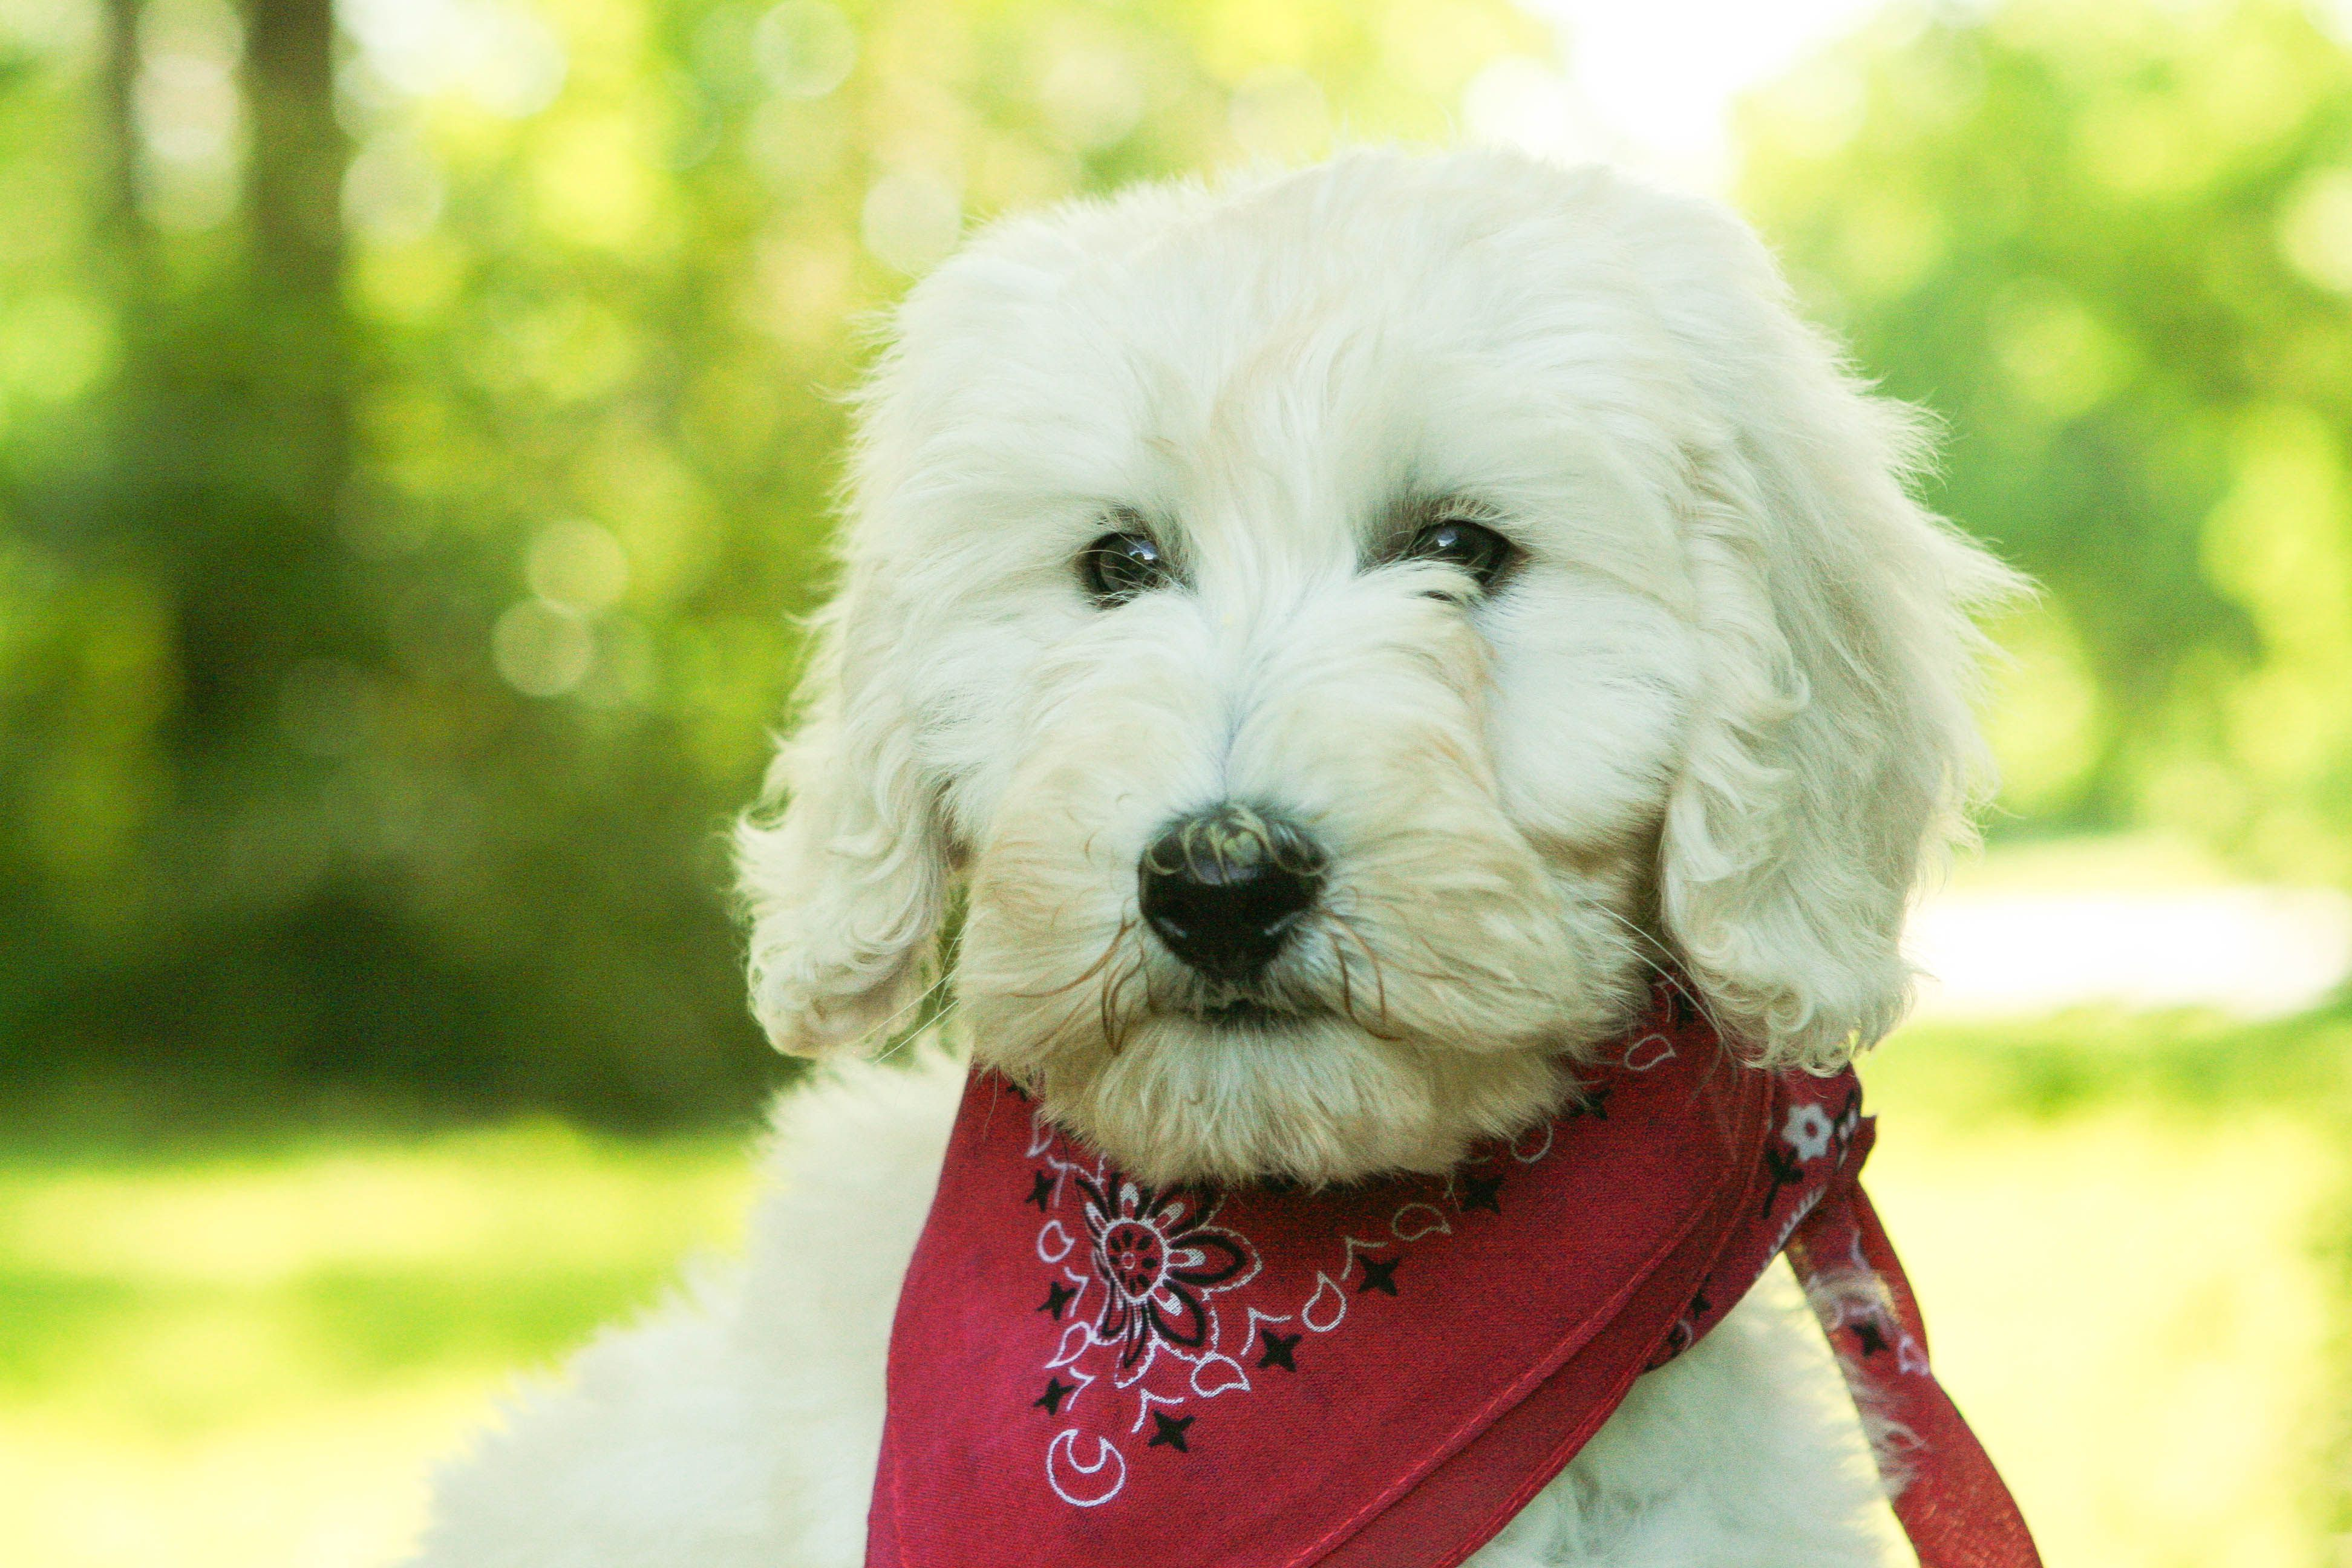 Puppies for sale, Goldendoodle puppy